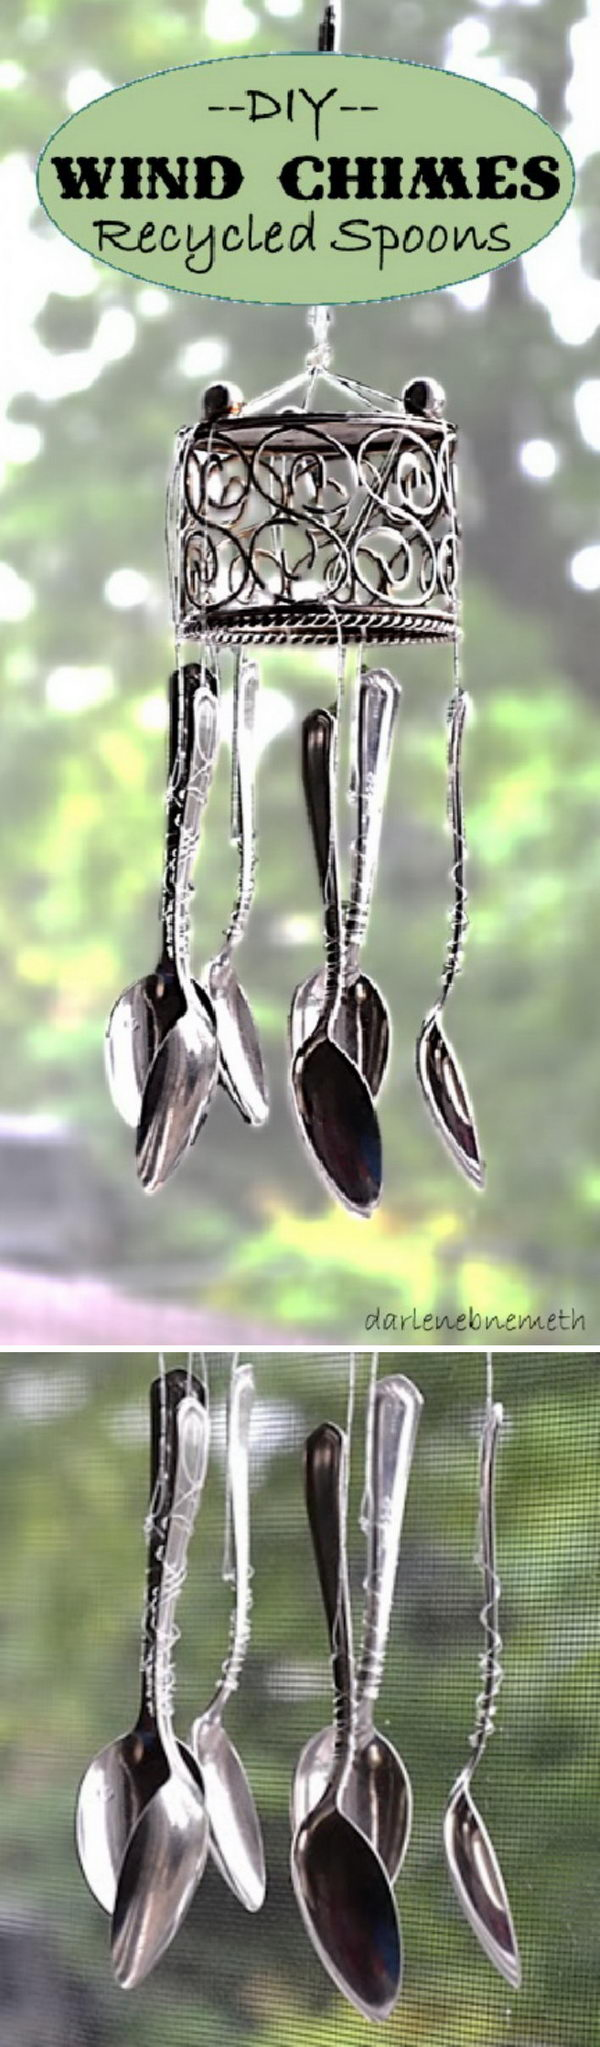 Recycled Spoons Wind Chimes.